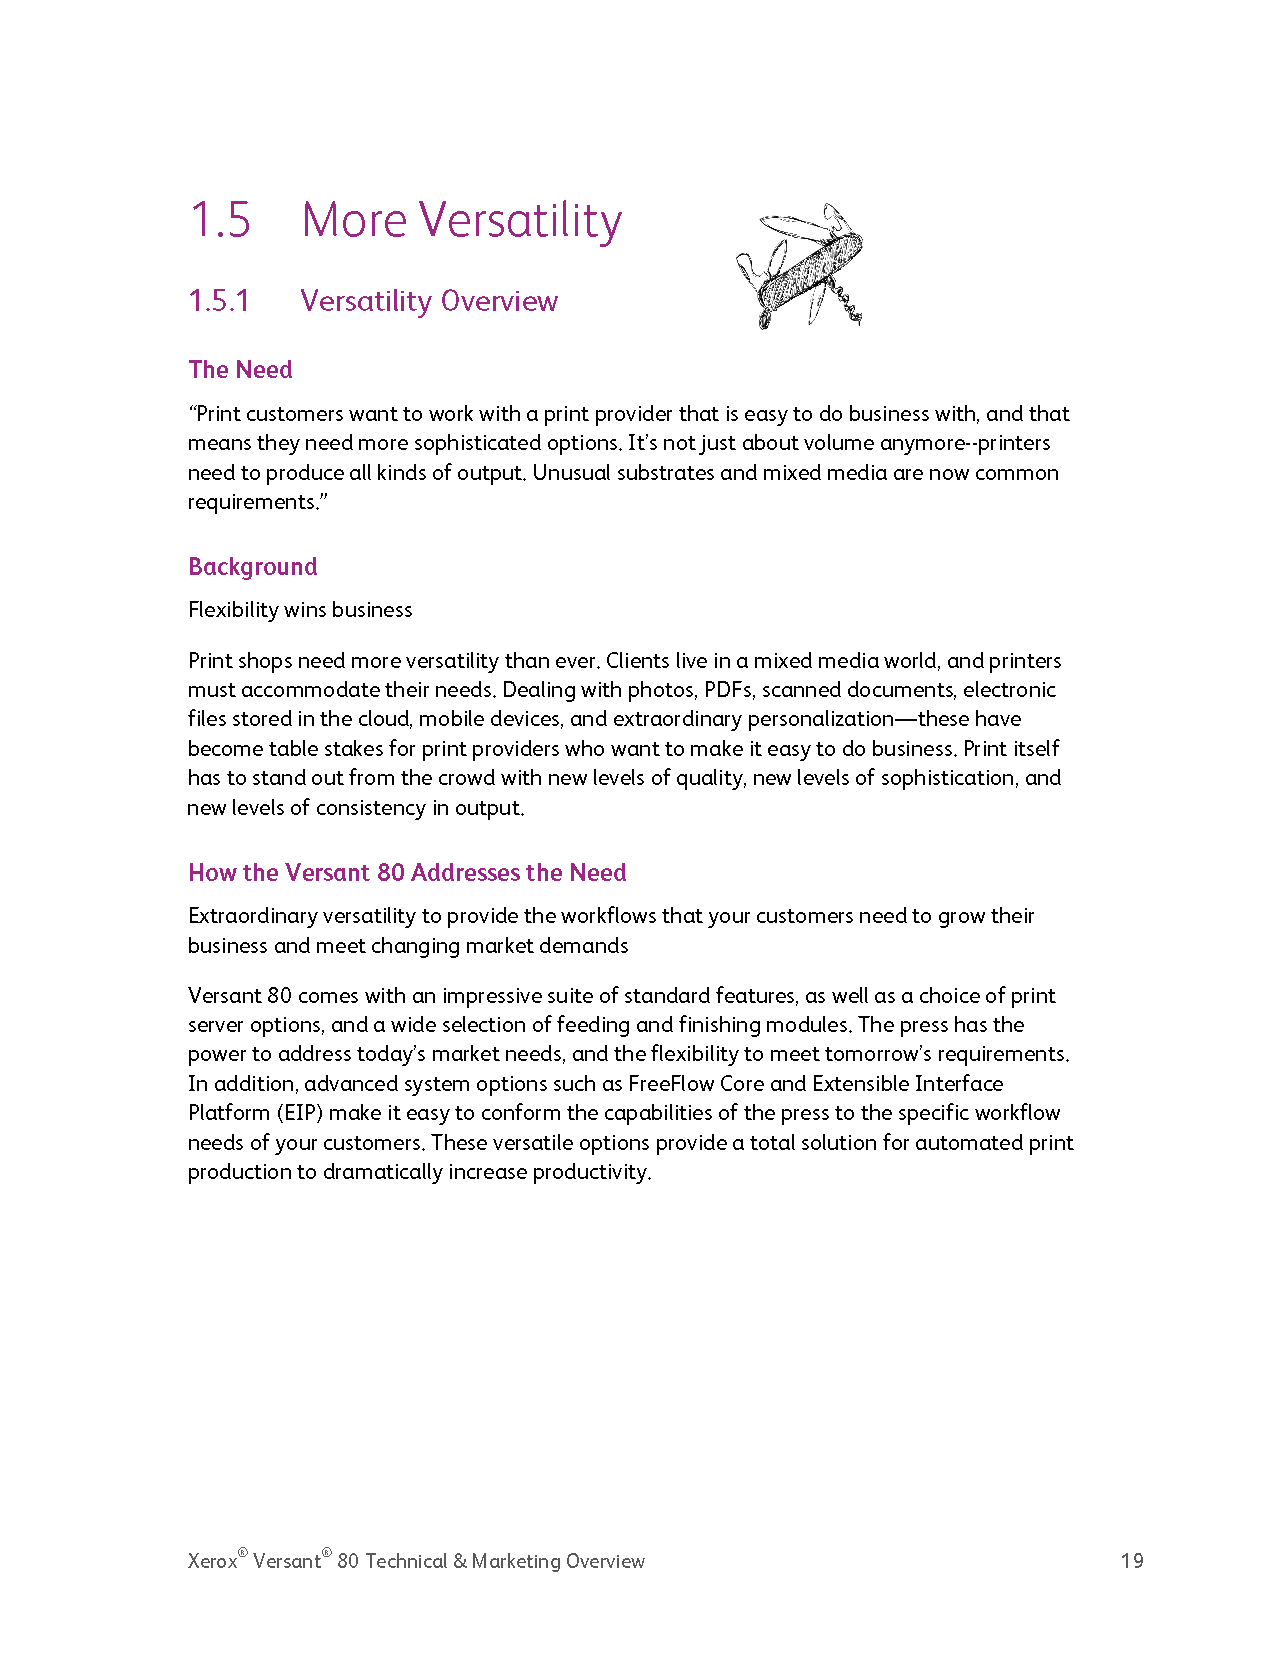 Versant 80 TMO Final_12.18.14.Optimized_Page_027.png